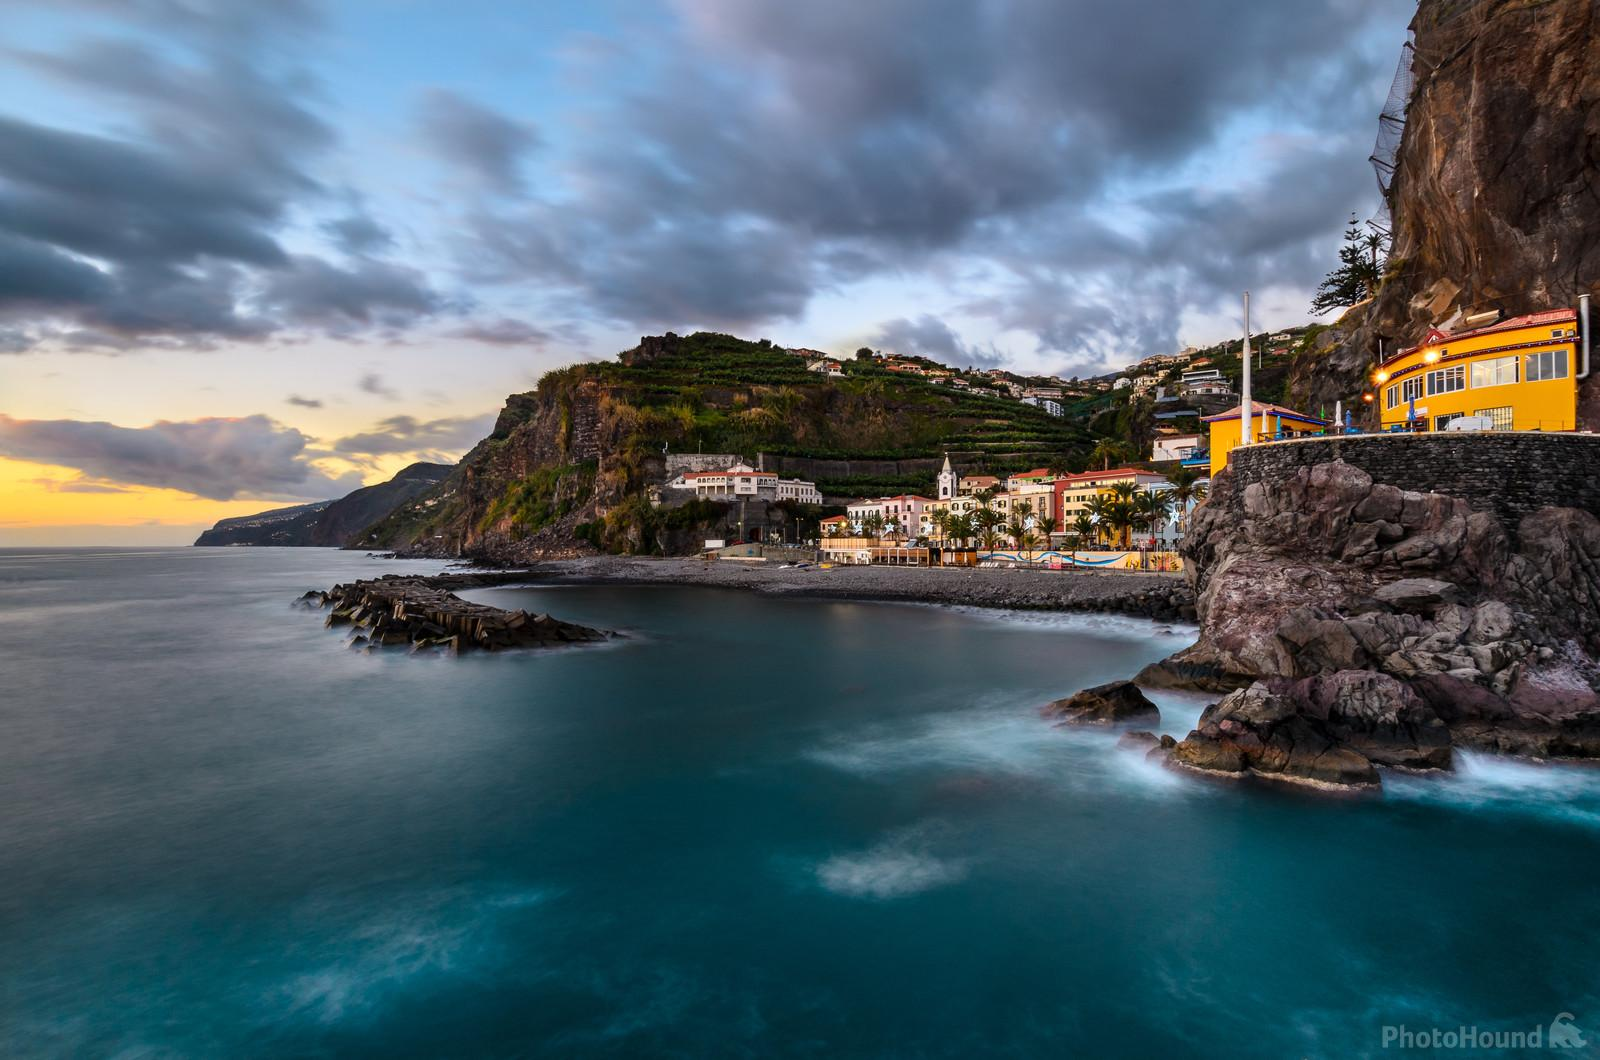 Ponta do Sol, taken with wider angle lens (16mm FF) and several images are blended to get the smooth water with some lights and the best sky from the sunset.